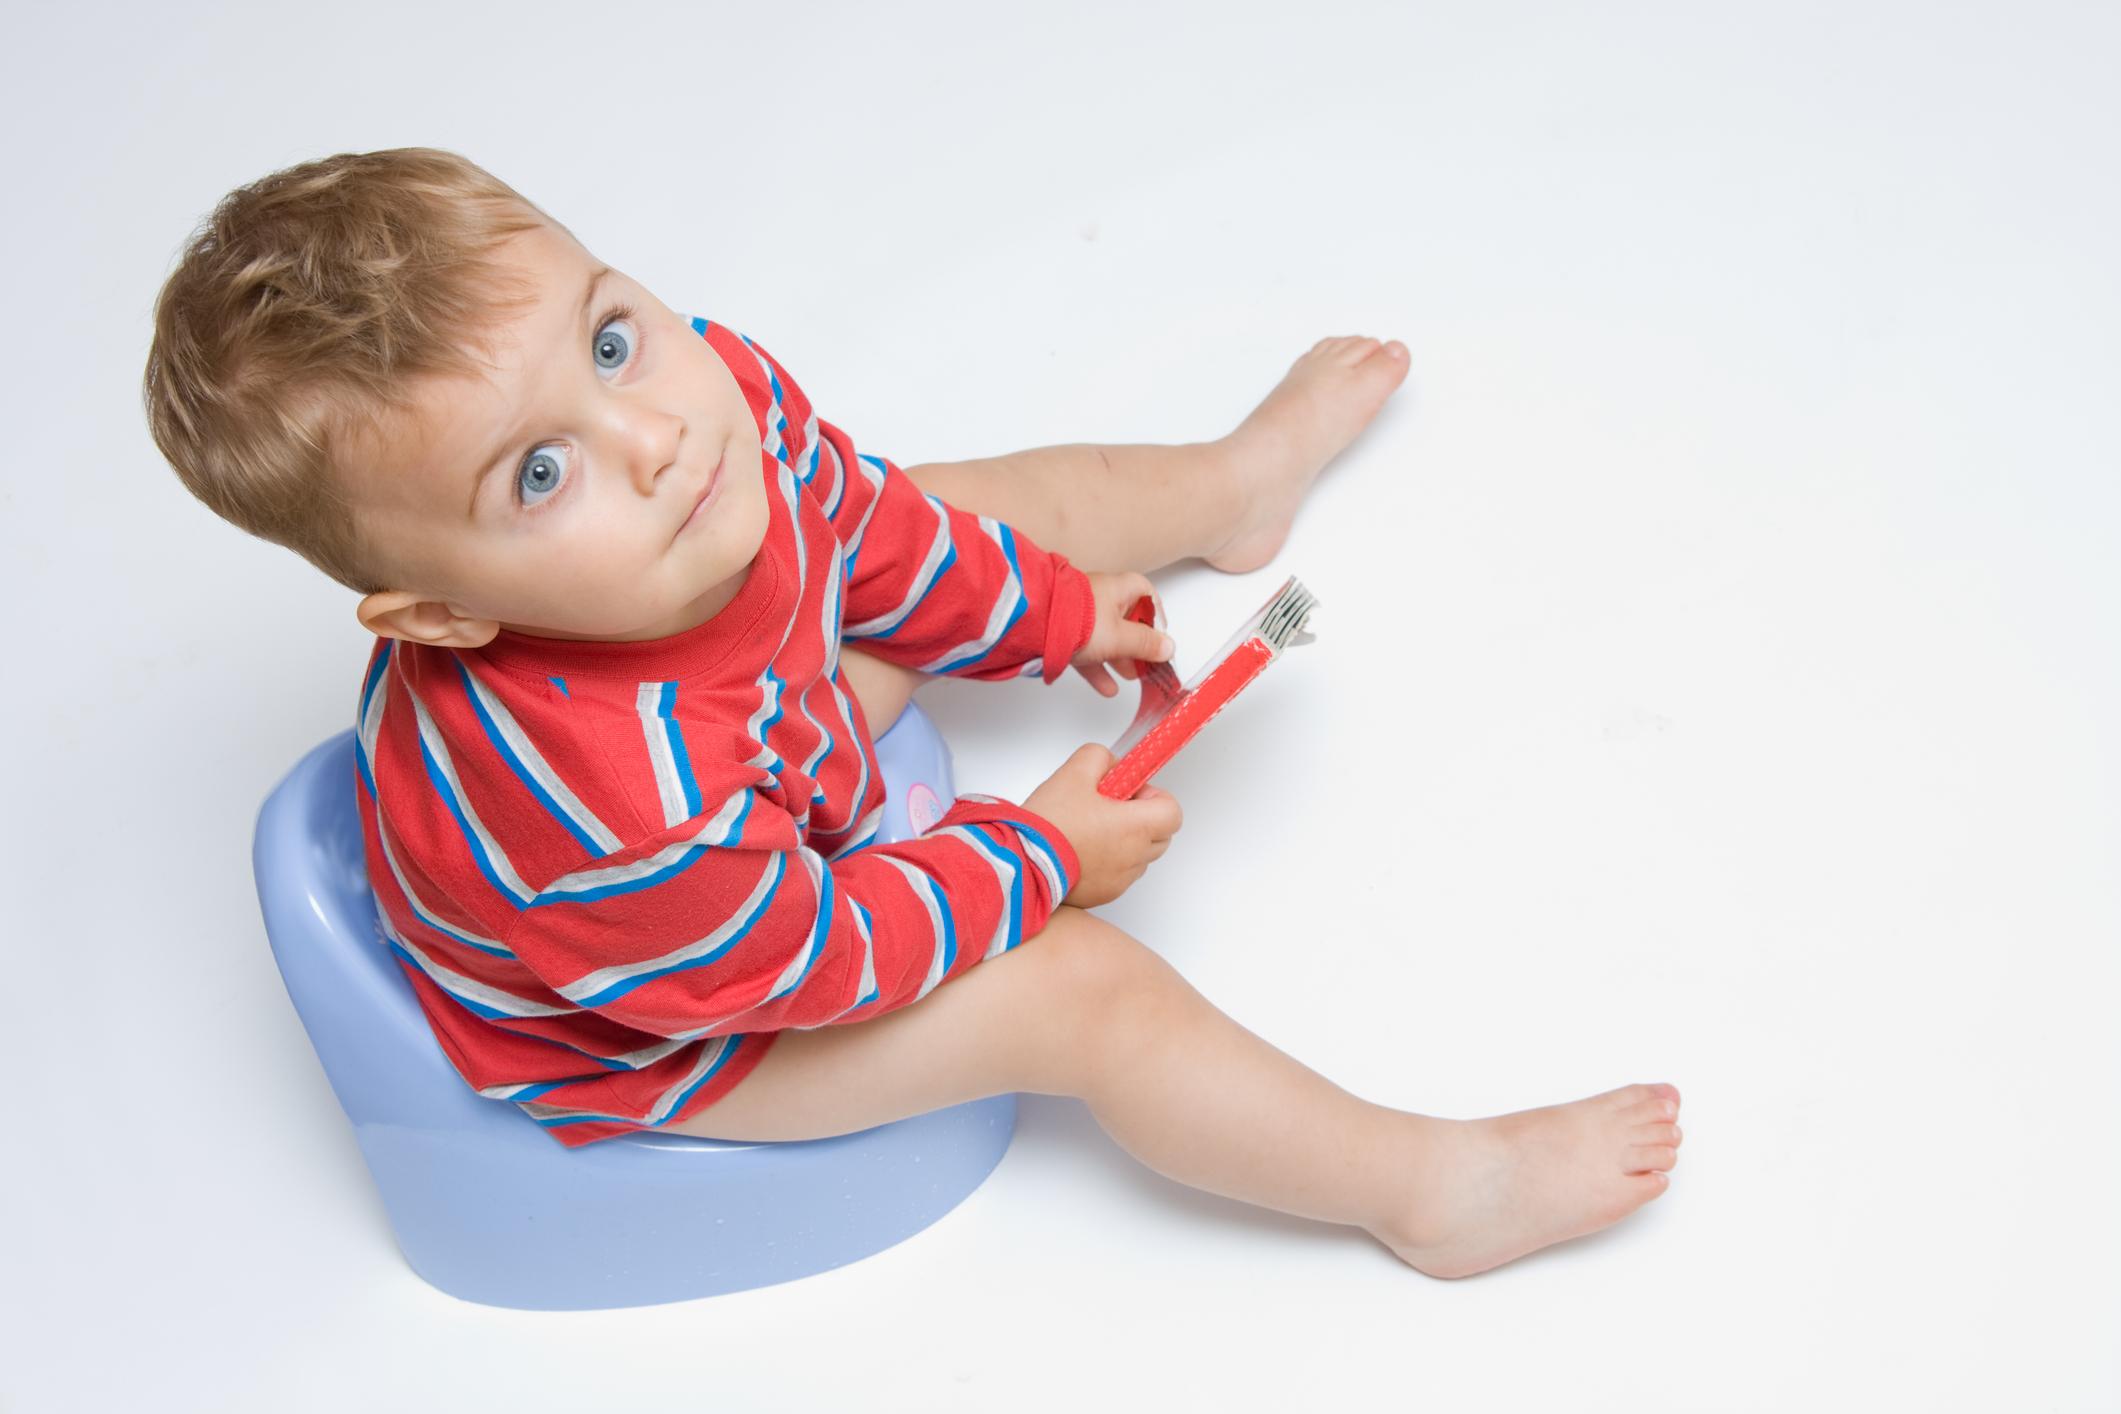 Potty Training? 3 Things to Watch for and Why